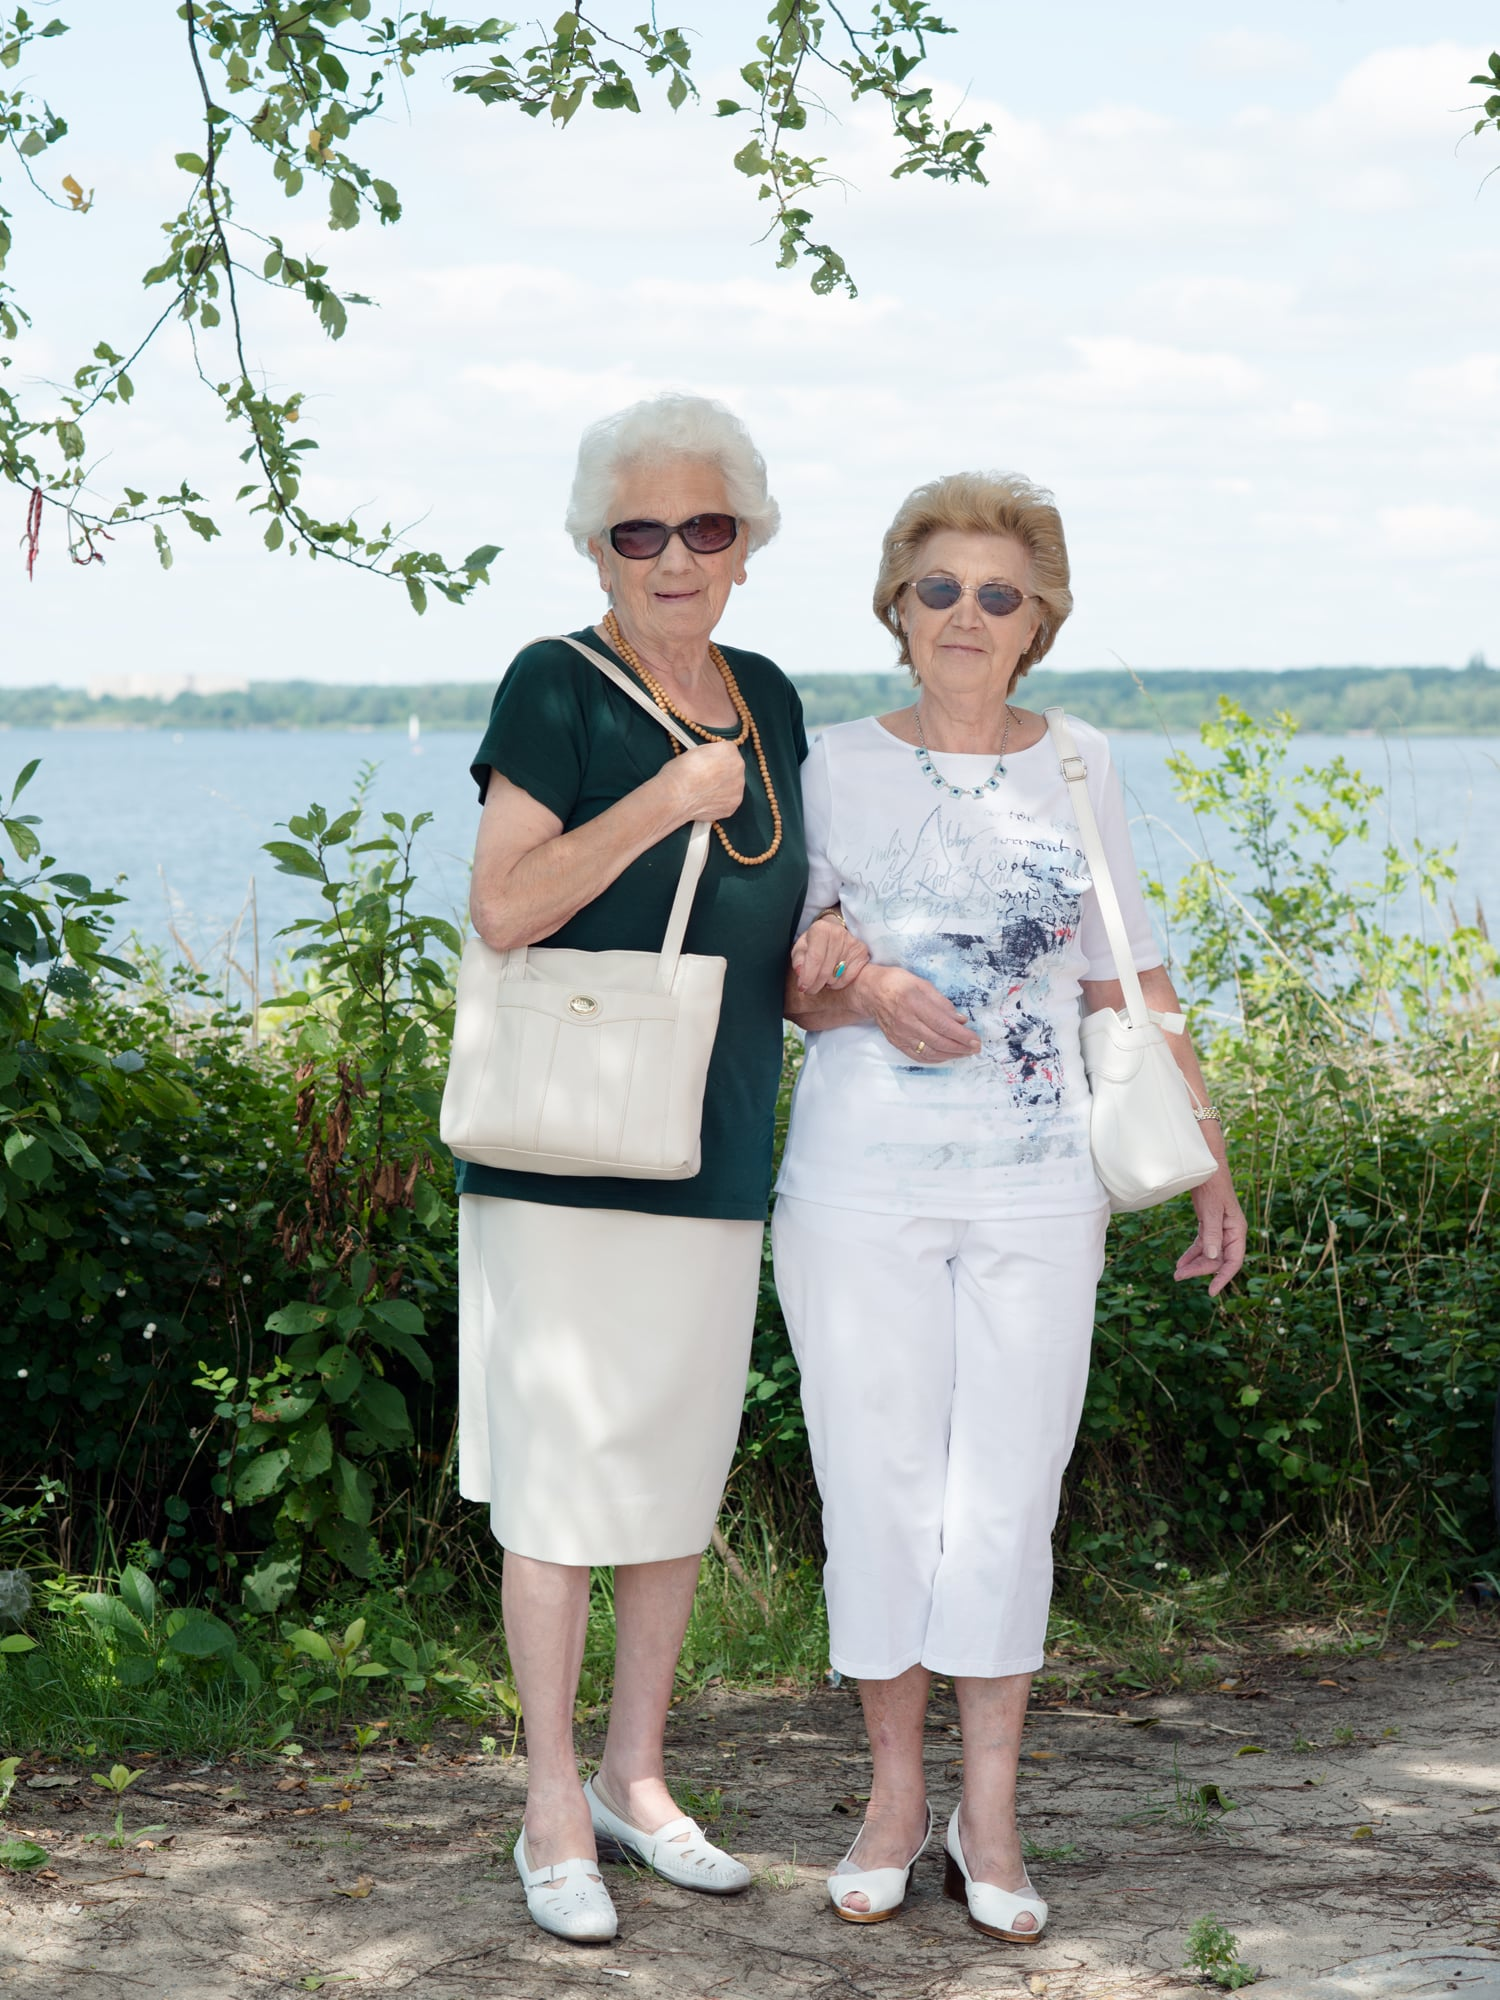 "Eleanore and Erika  Eleanore and Erika are visiting lake ""Senftenberger See"". They live in the city Senftenberg, which is bordering the lake and they remember how different it used to look here. According to them people from Senftenberg are very proud of how much the area has changed within the last years."